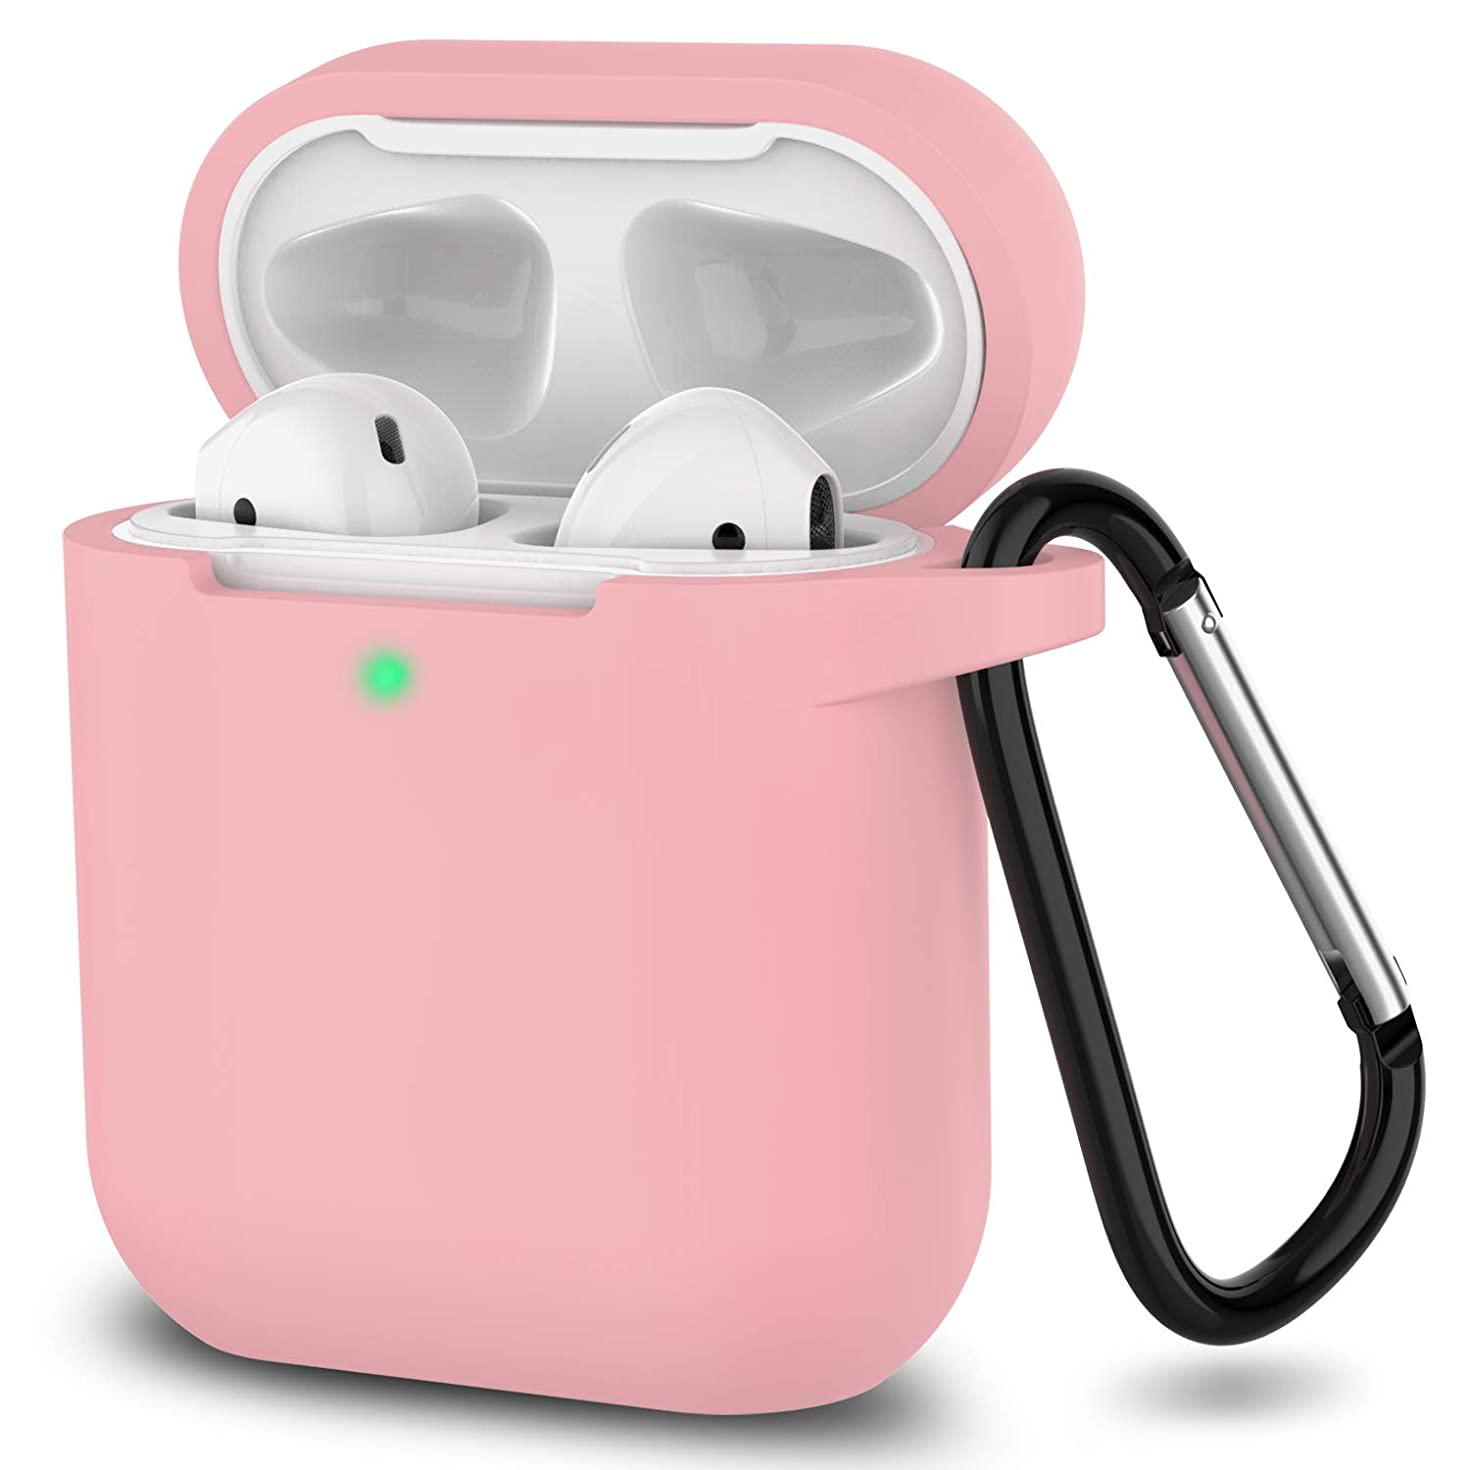 Newest 2019 AirPods Case,Full Protective Silicone AirPods Accessories Cover Compatiable with Apple AirPods Wireless Charging Case[Front LED Visible]-Pink